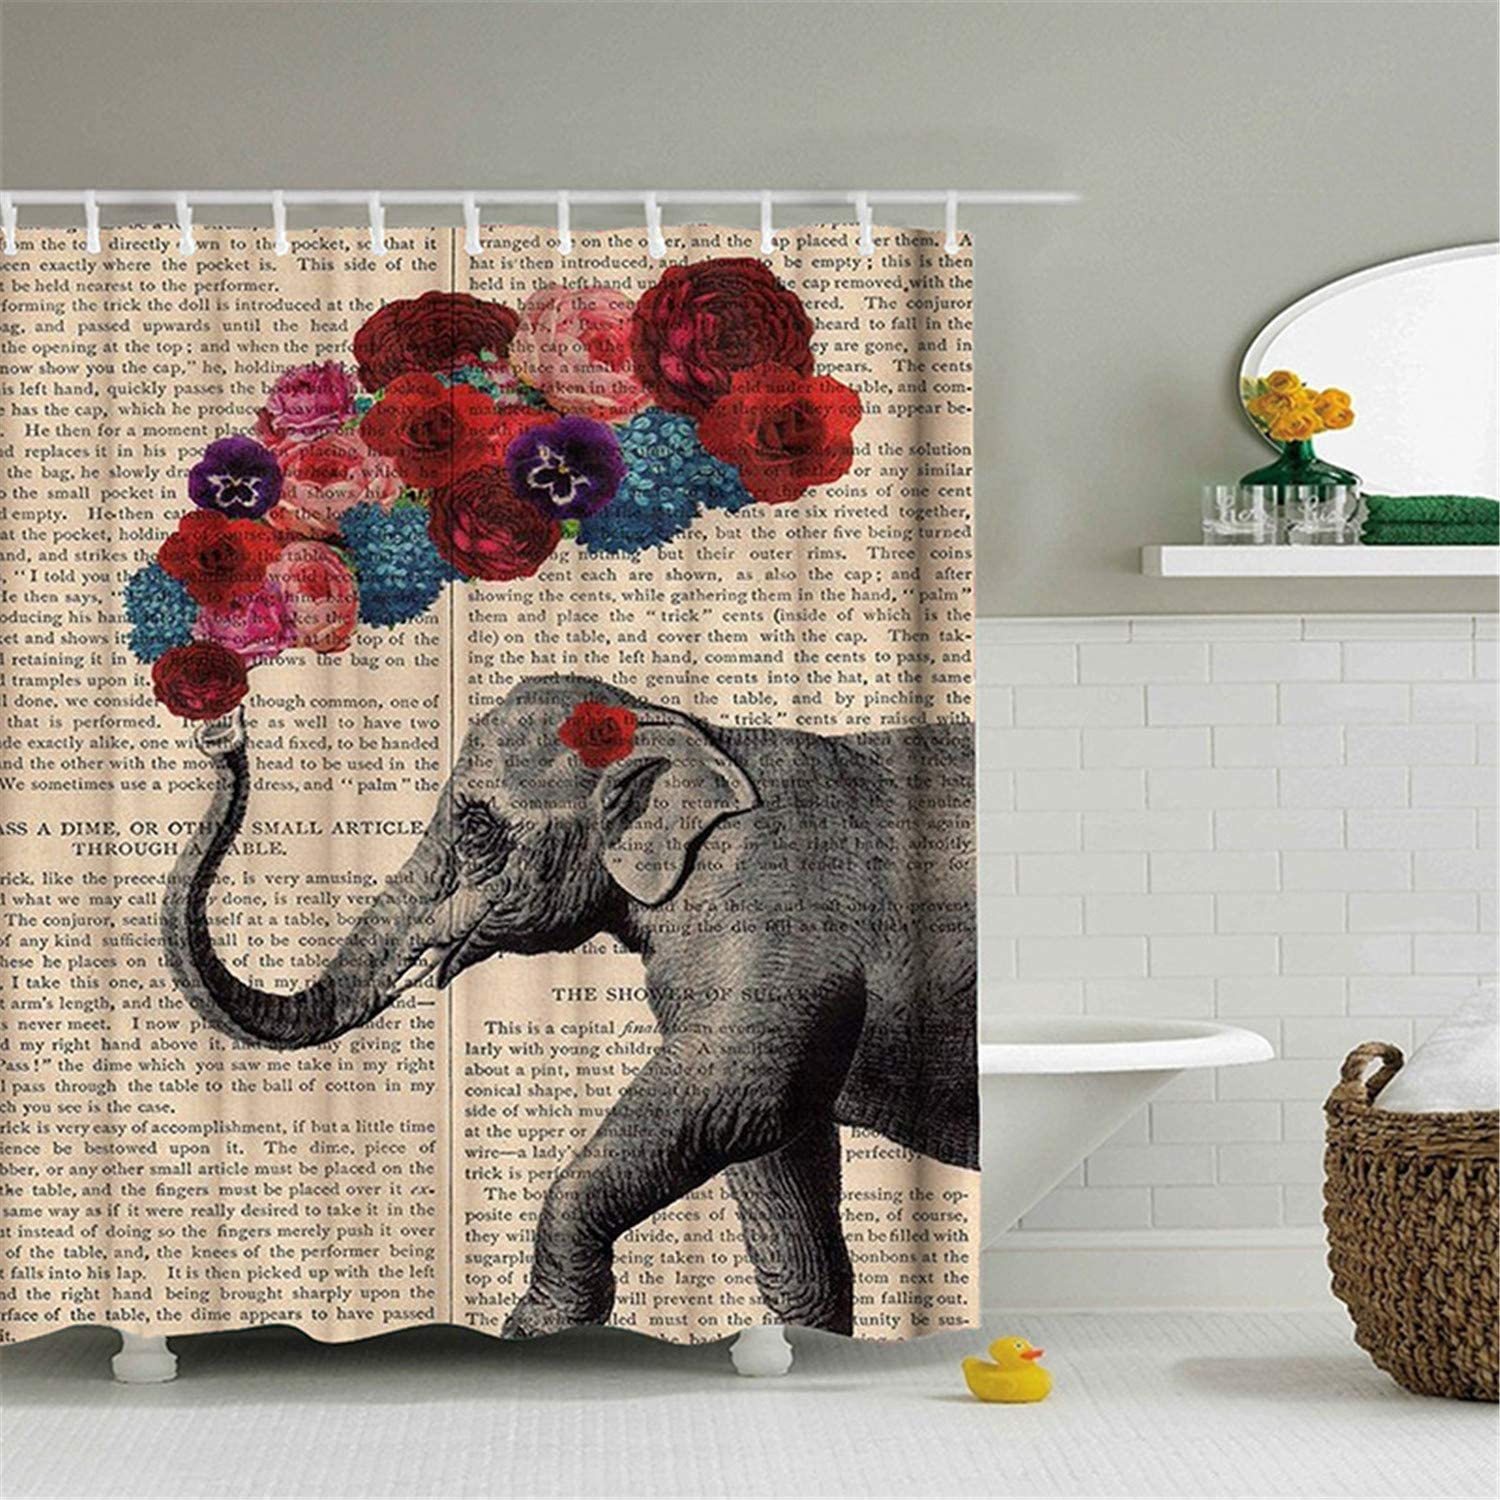 hipaopao Cute Elephant Flower Pattern Shower Curtain African Wildlife Animal Vintage Fabric Bathroom Decor with Hooks Waterproof Washable 72 x 72 inches Grey Red Blue